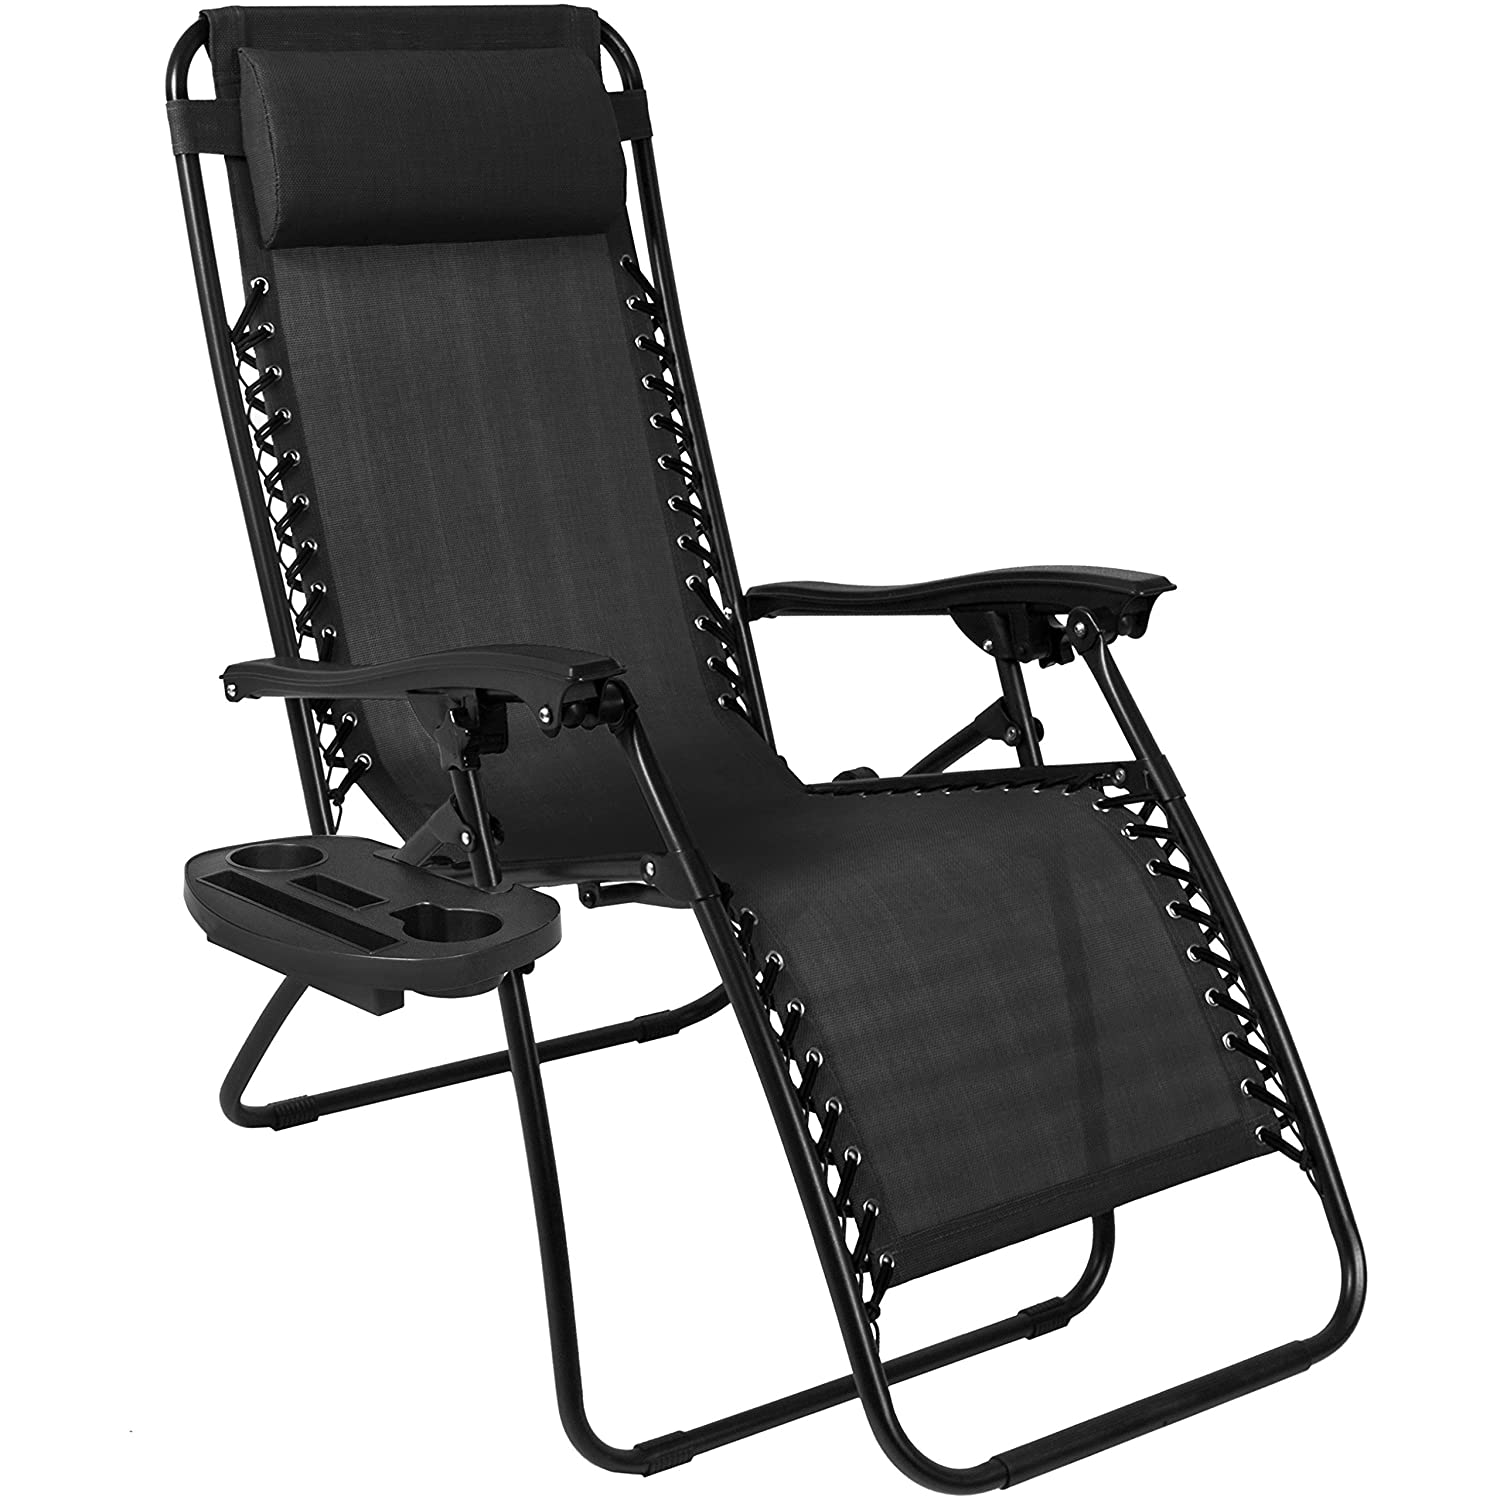 Amazon.com  Best Choice Products Zero Gravity Chairs Case Of (2) Black Lounge Patio Chairs Outdoor Yard Beach New  Garden u0026 Outdoor  sc 1 st  Amazon.com : zero gravity garden recliner - islam-shia.org